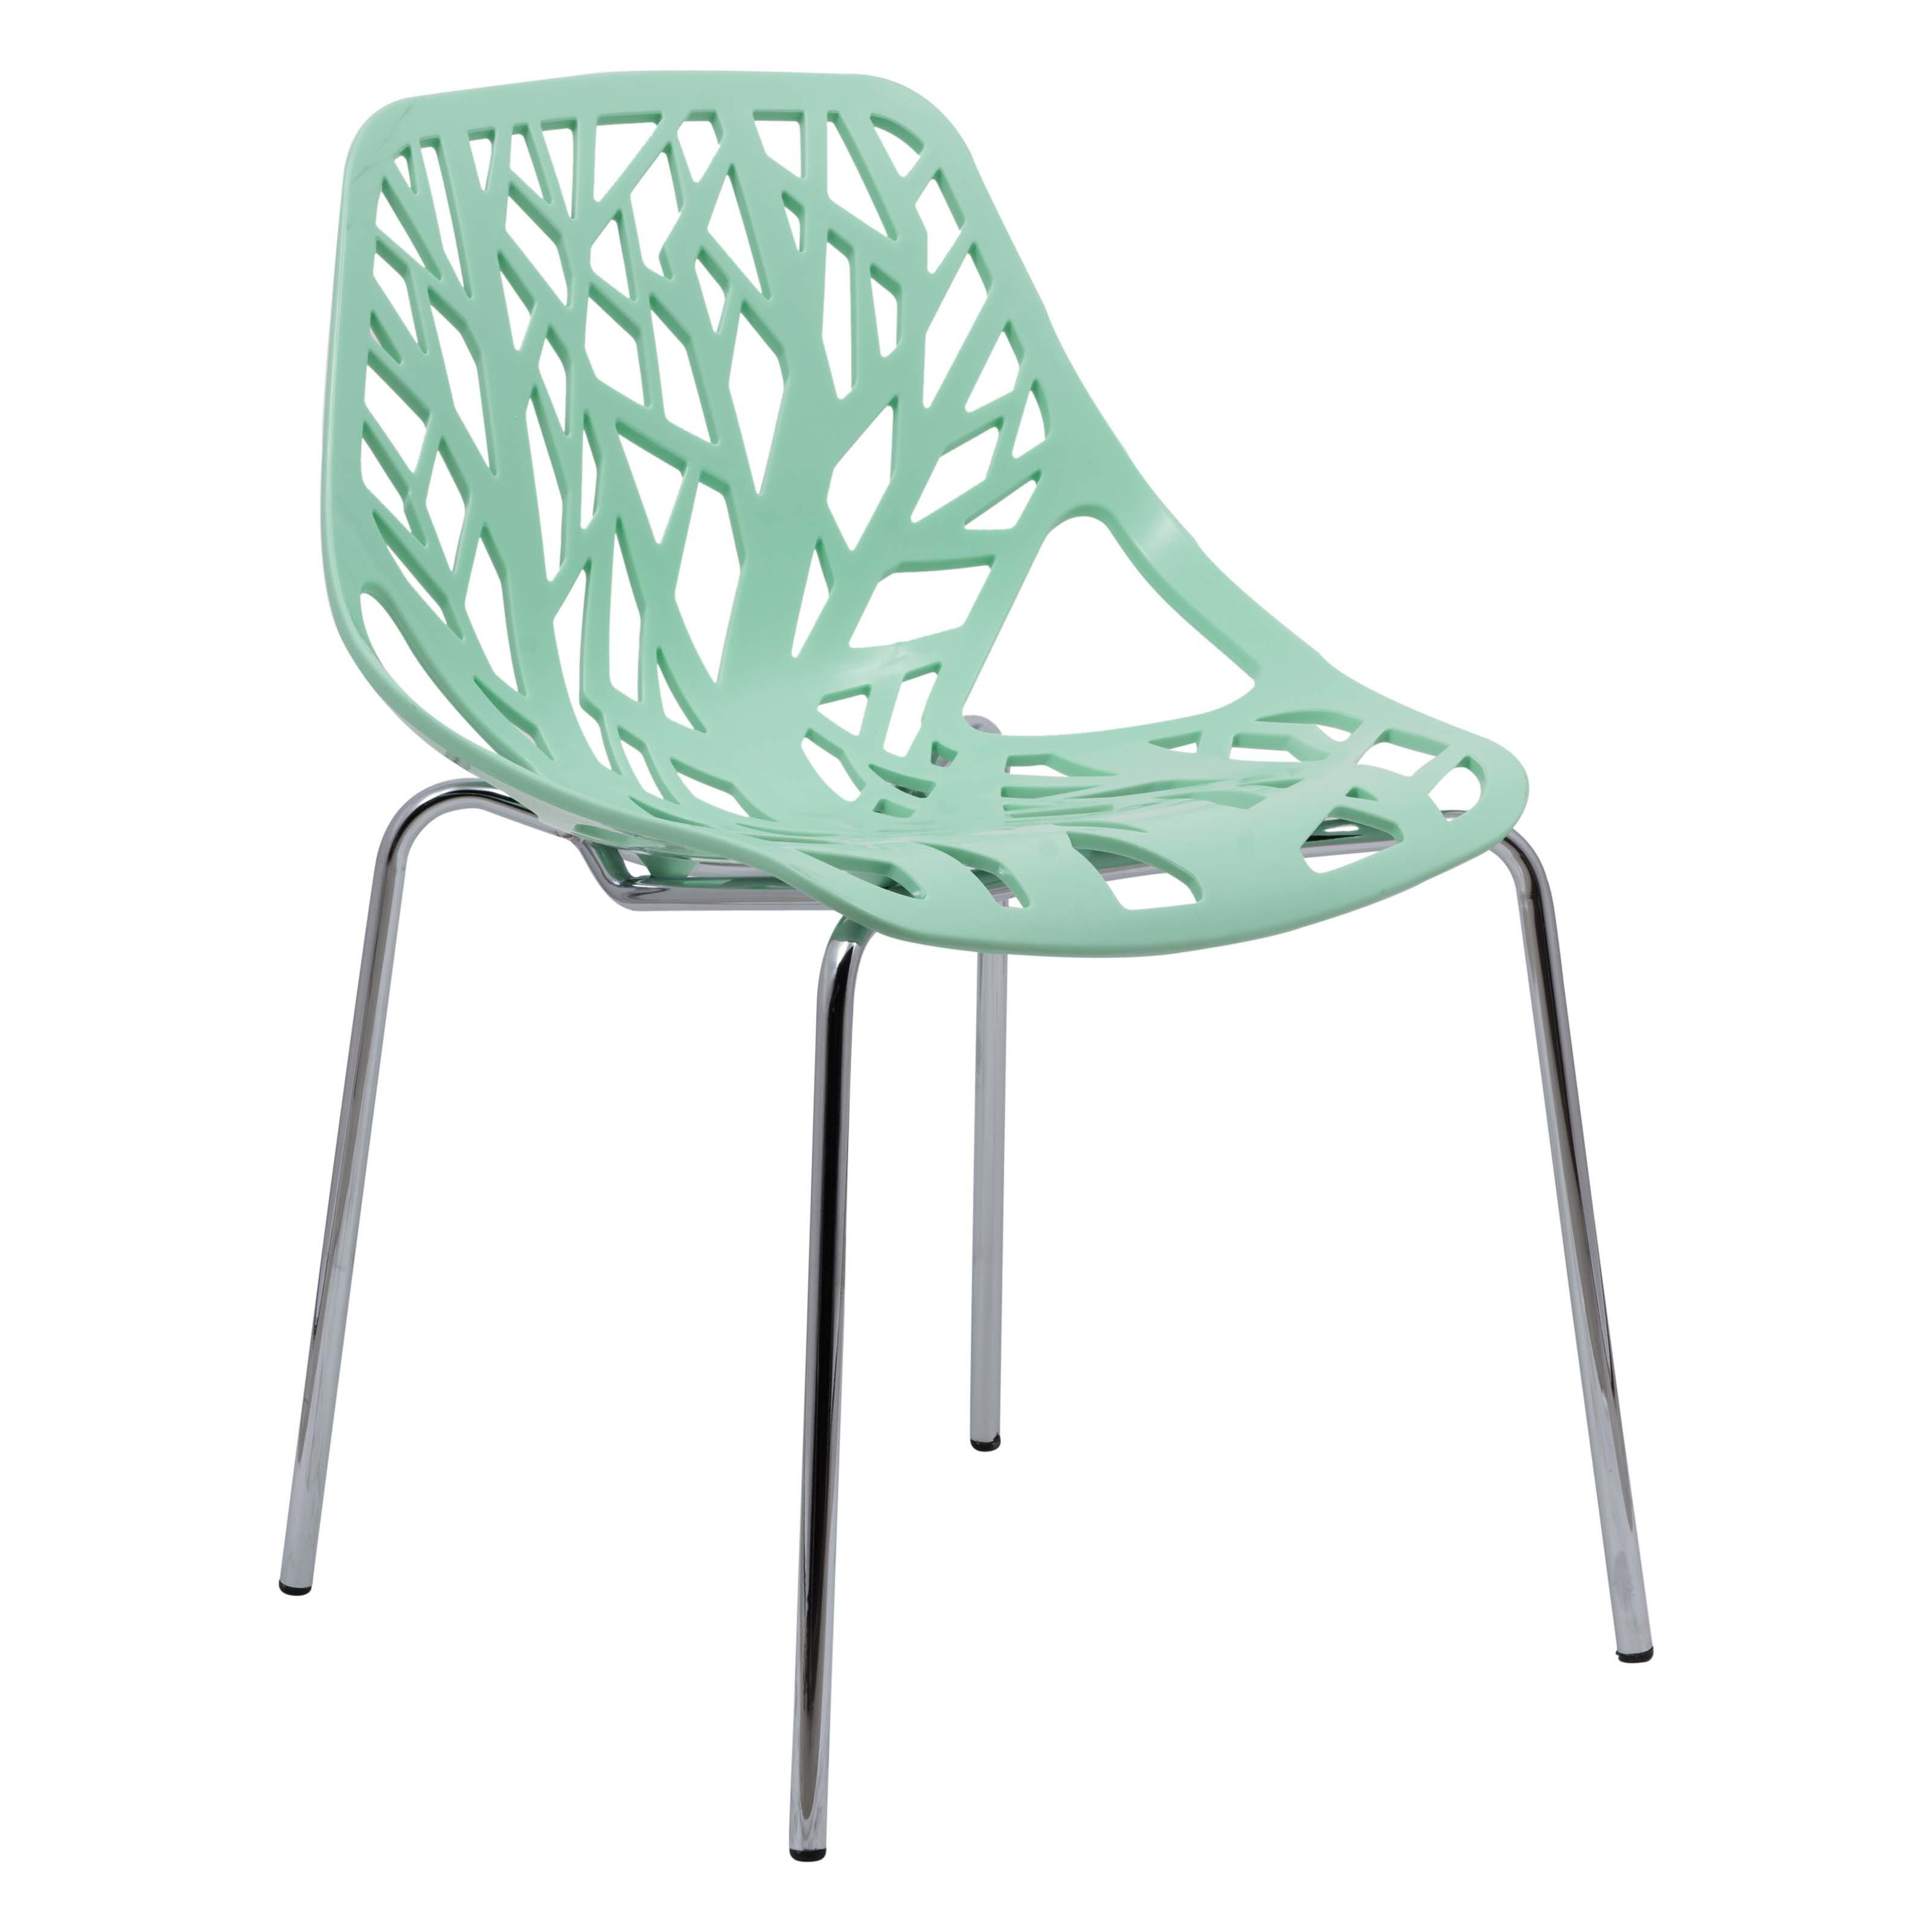 Features strong molded polypropylene seat with intricate cutout